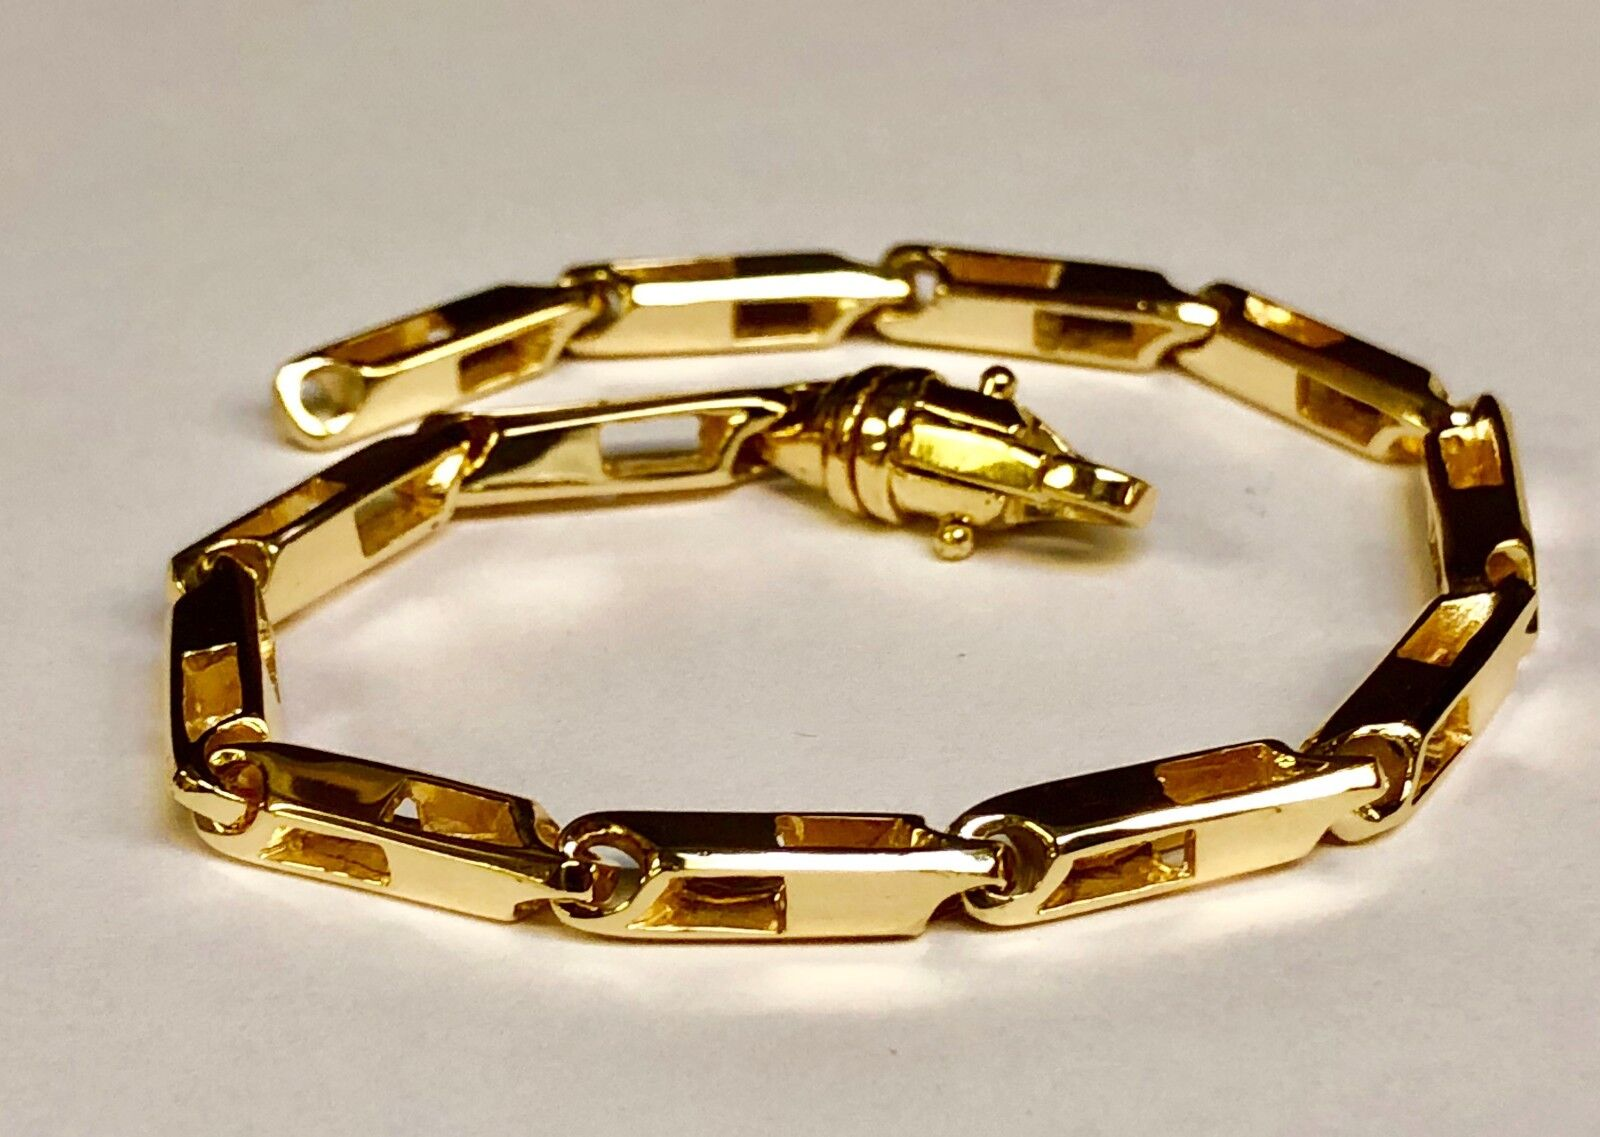 14k Solid Yellow gold Handmade Fashion Link Men Chain Bracelet 10  27 grm 4.5MM